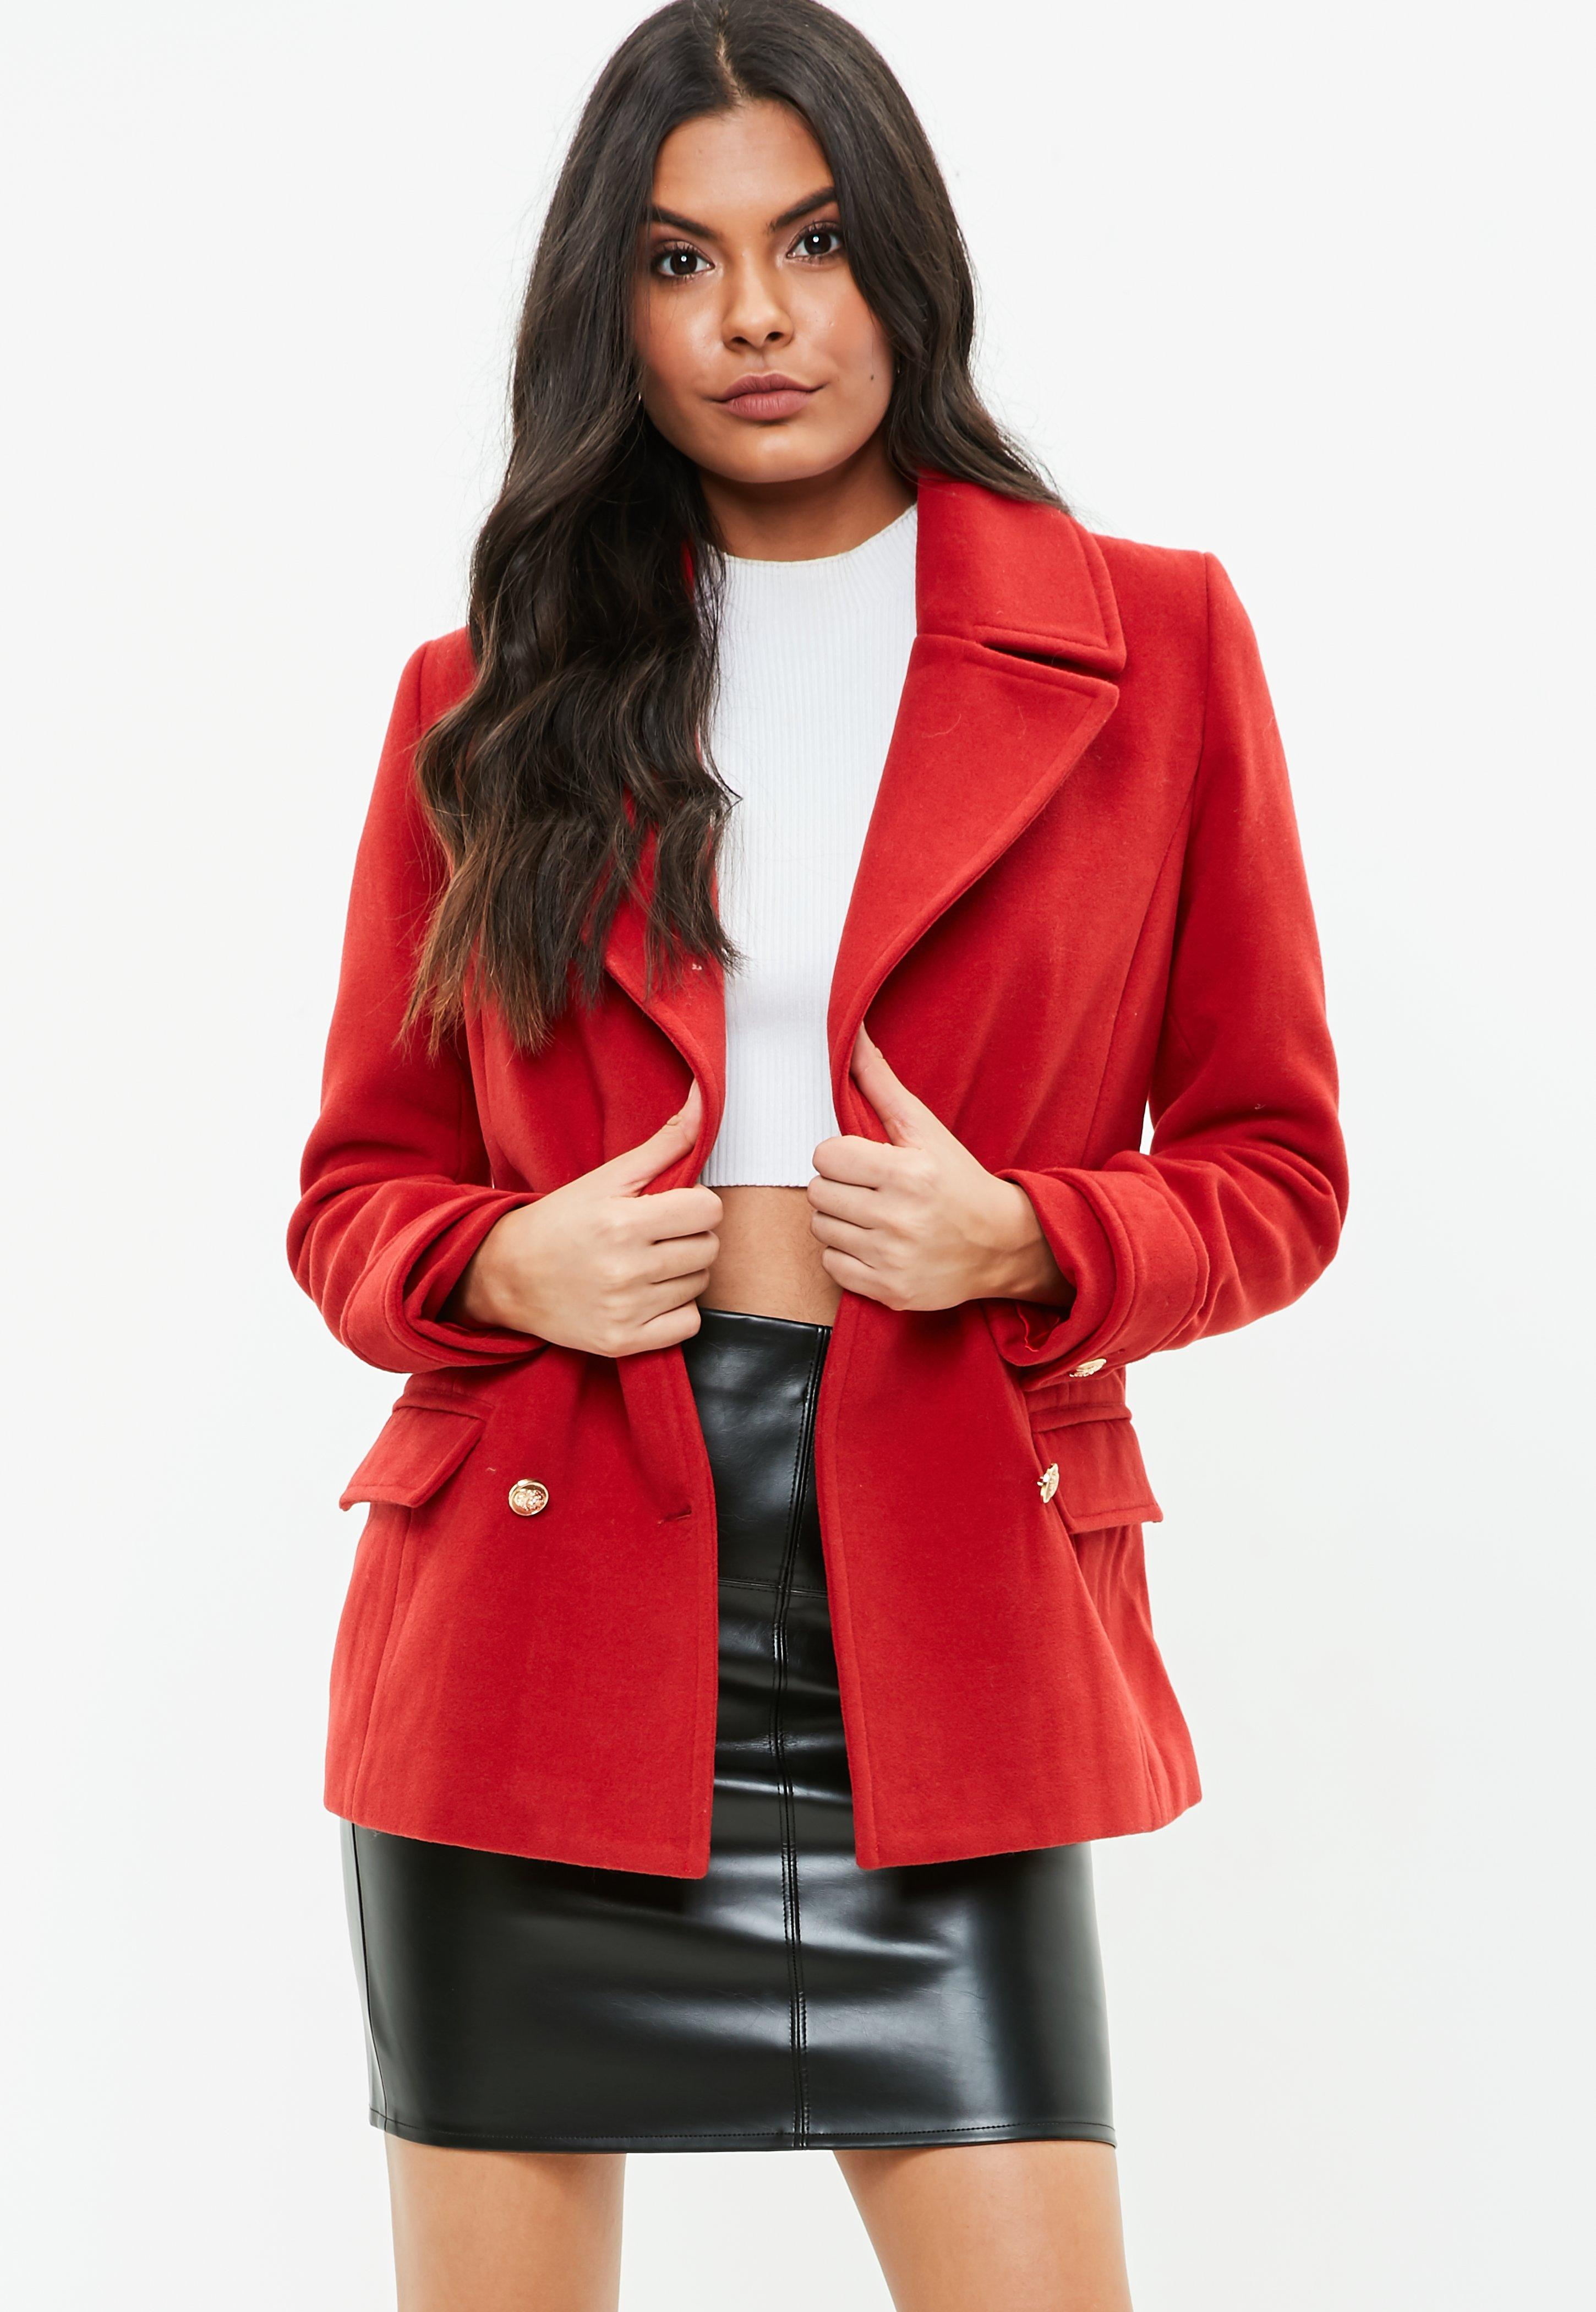 Missguided Military Peacoat Jacket Largest Supplier Cheap Price Fast Express JLIKjZ